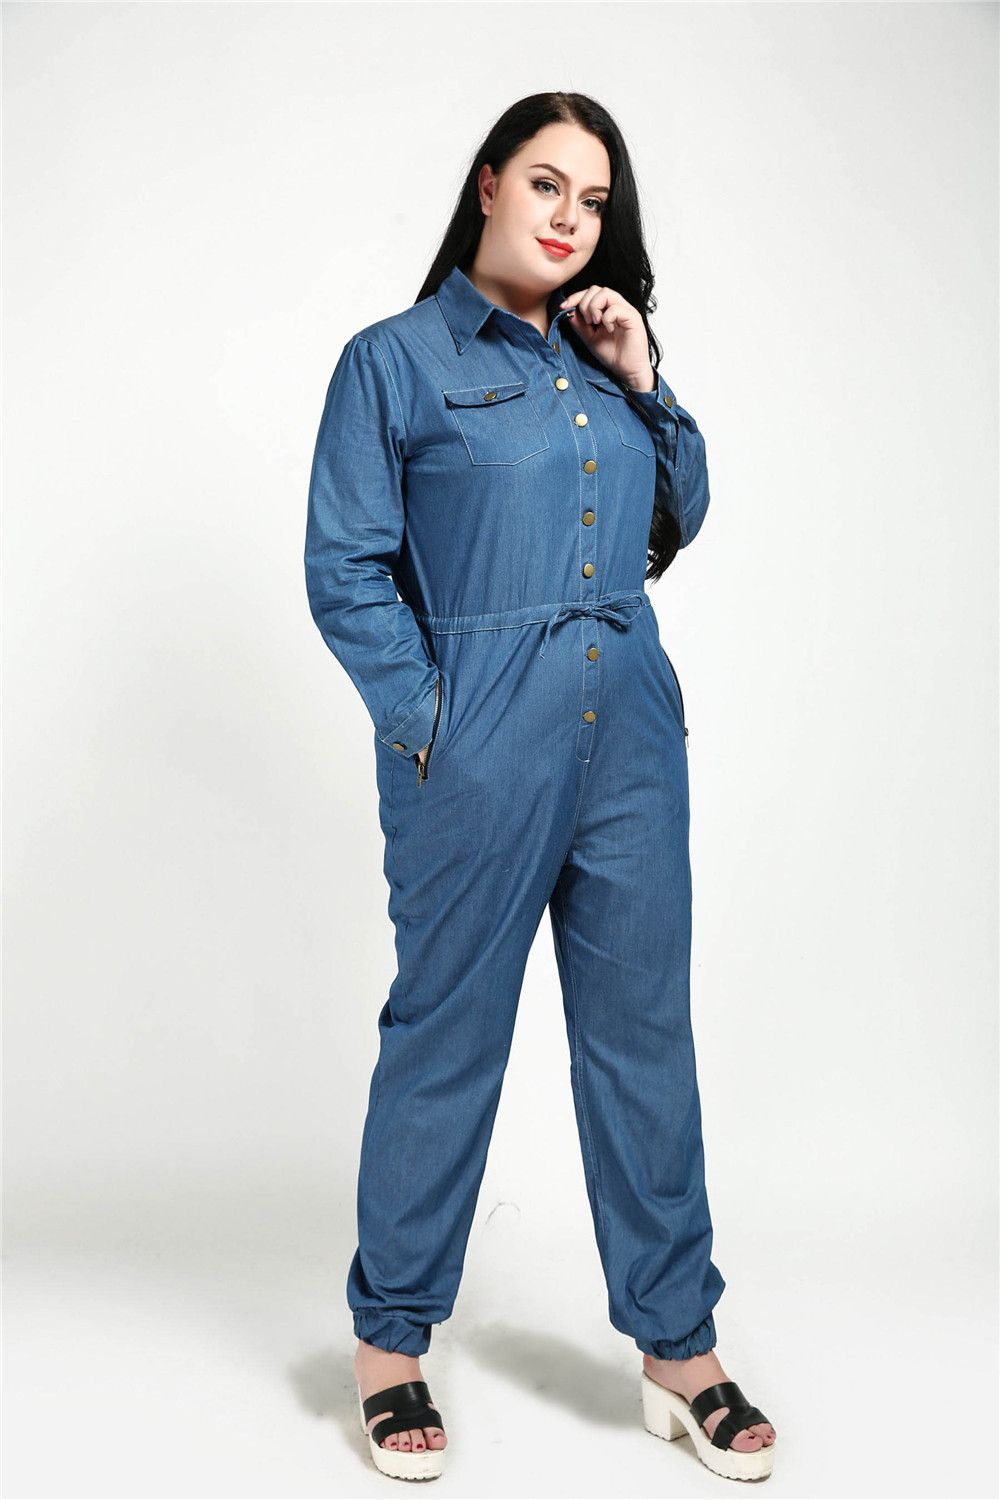 57954fb983da Cute Ann Women s Sexy Long Sleeve Plus Size Casual Denim Jumpsuits